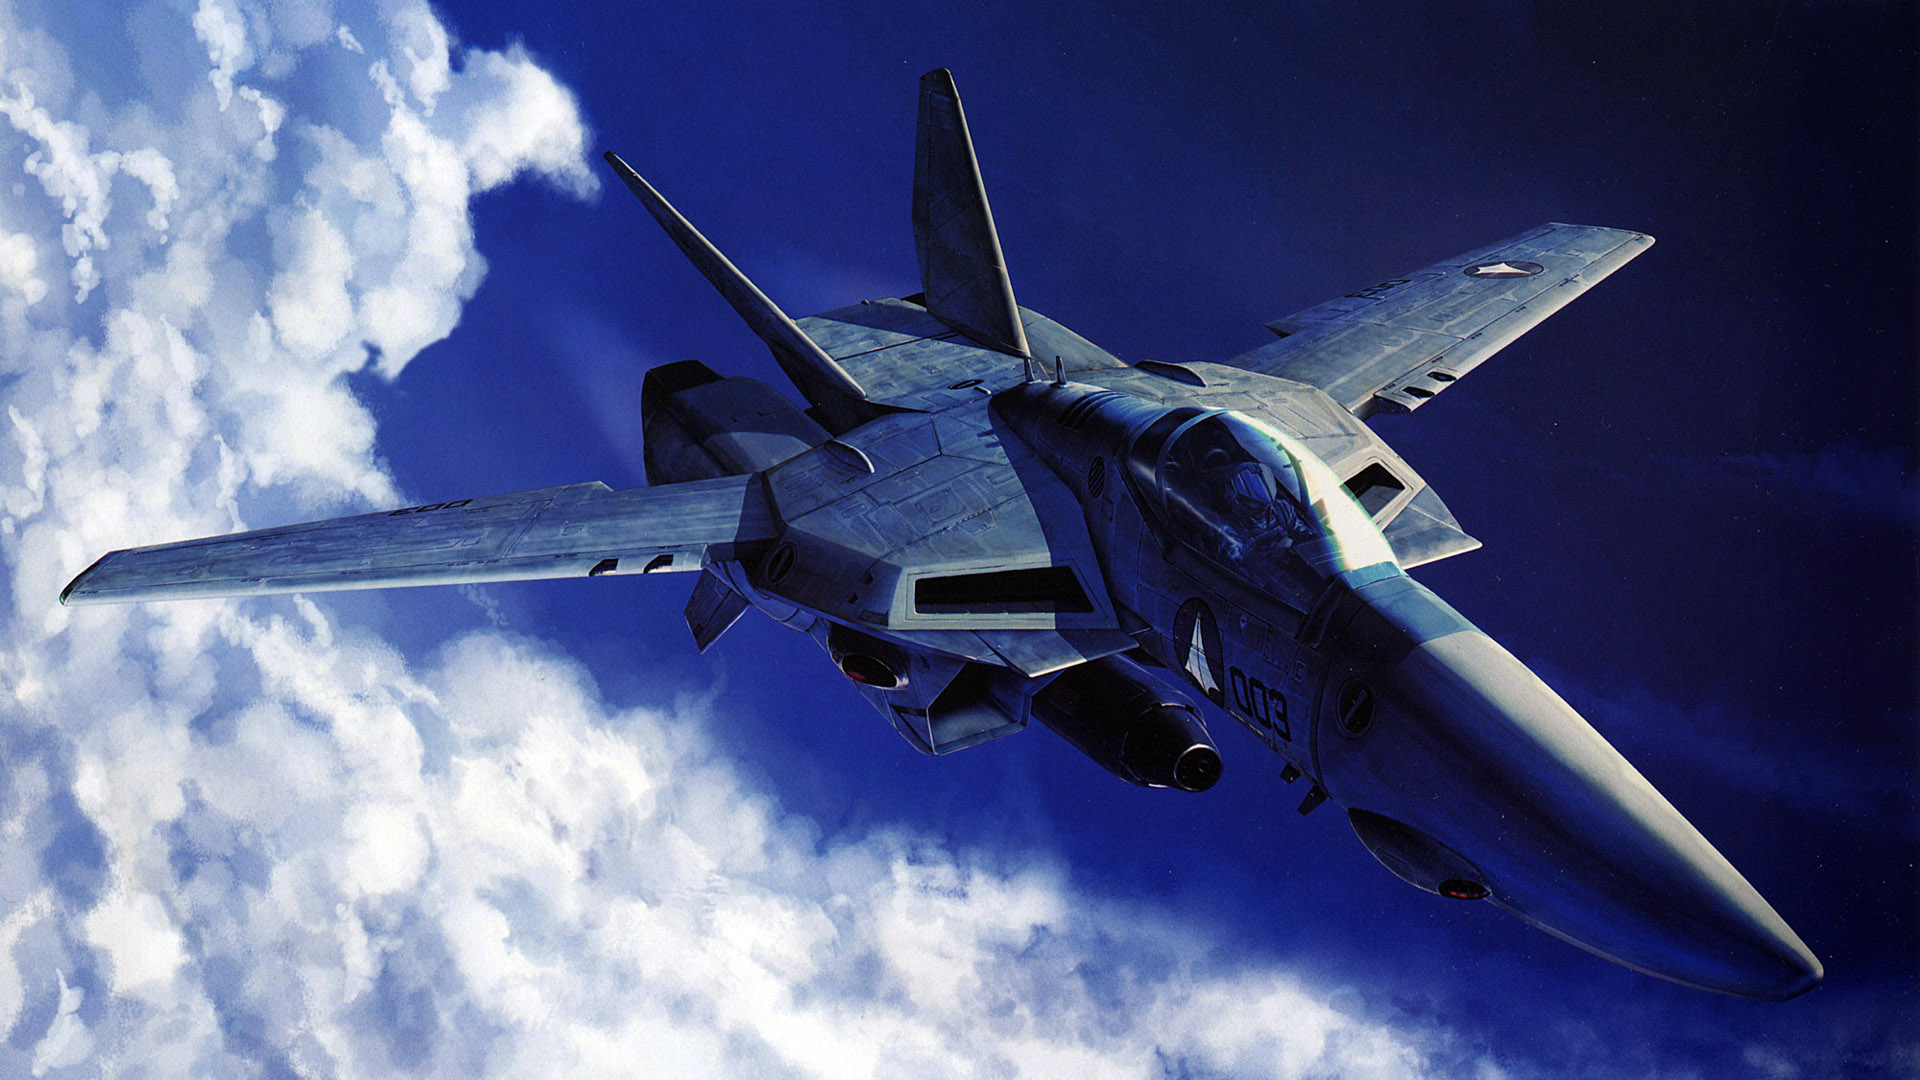 check out the latest Fighter Jets Hd Wallpapers and high definition 1920x1080